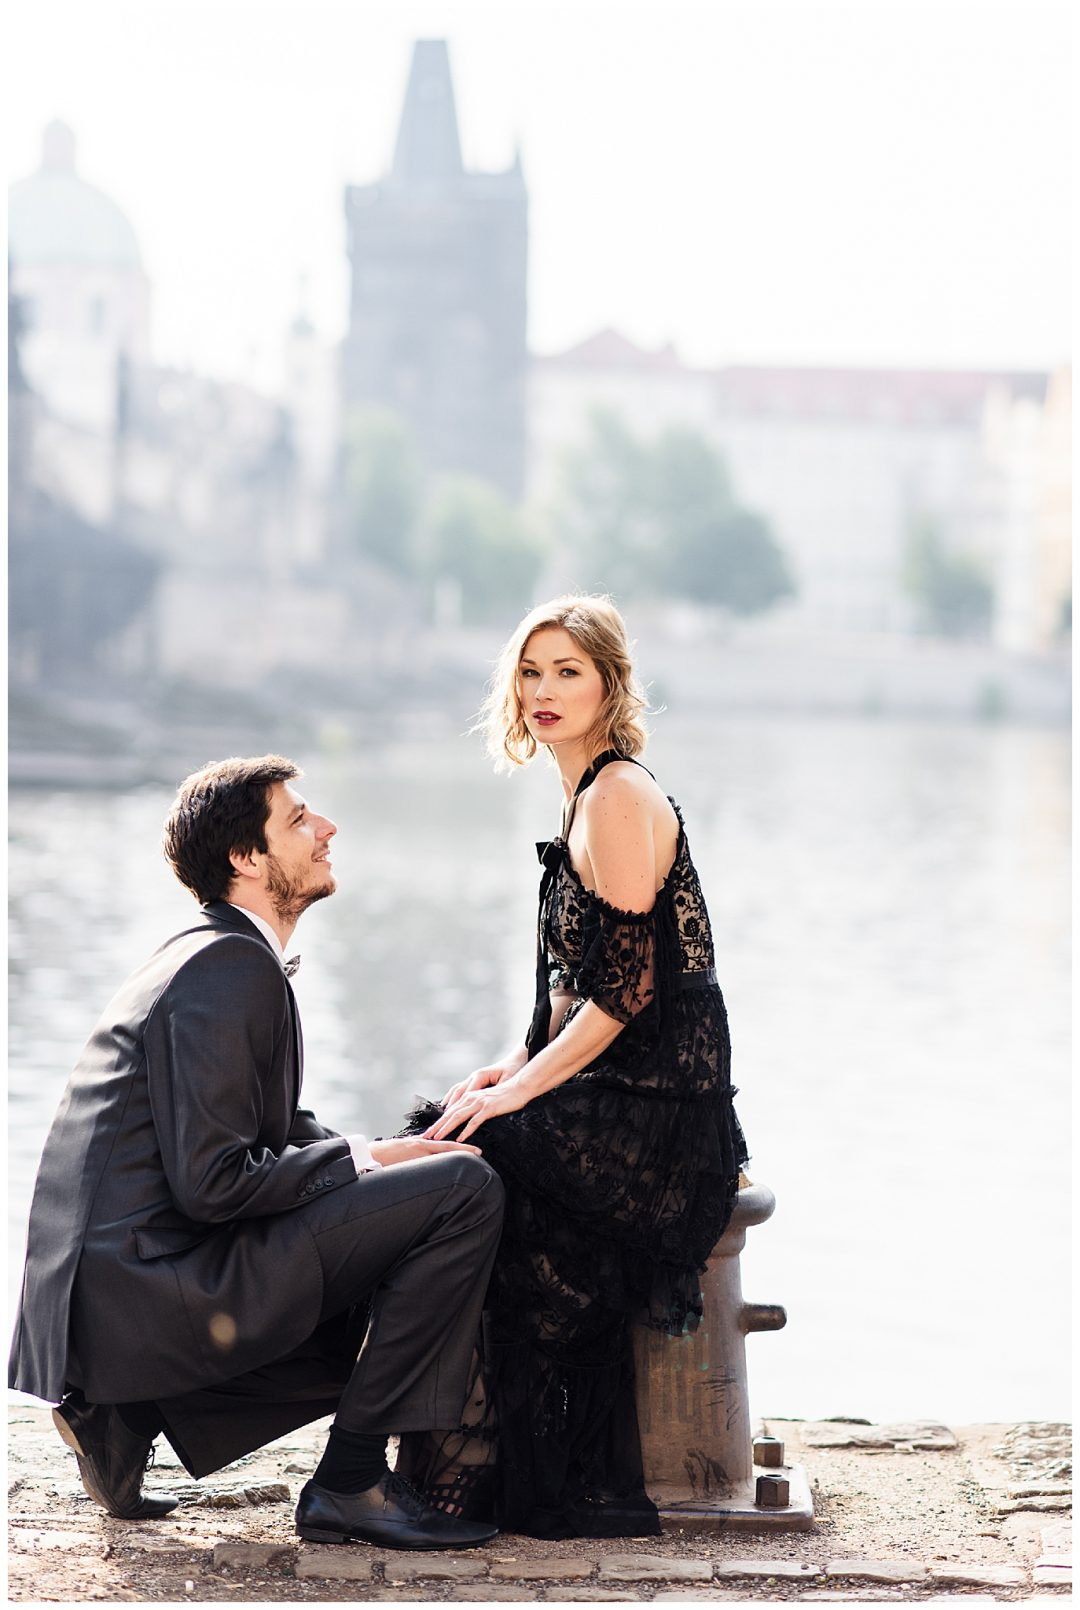 Destination Wedding Photographer | Prague Engagement - engagement - Elopement photographer Nkima Photography 0018